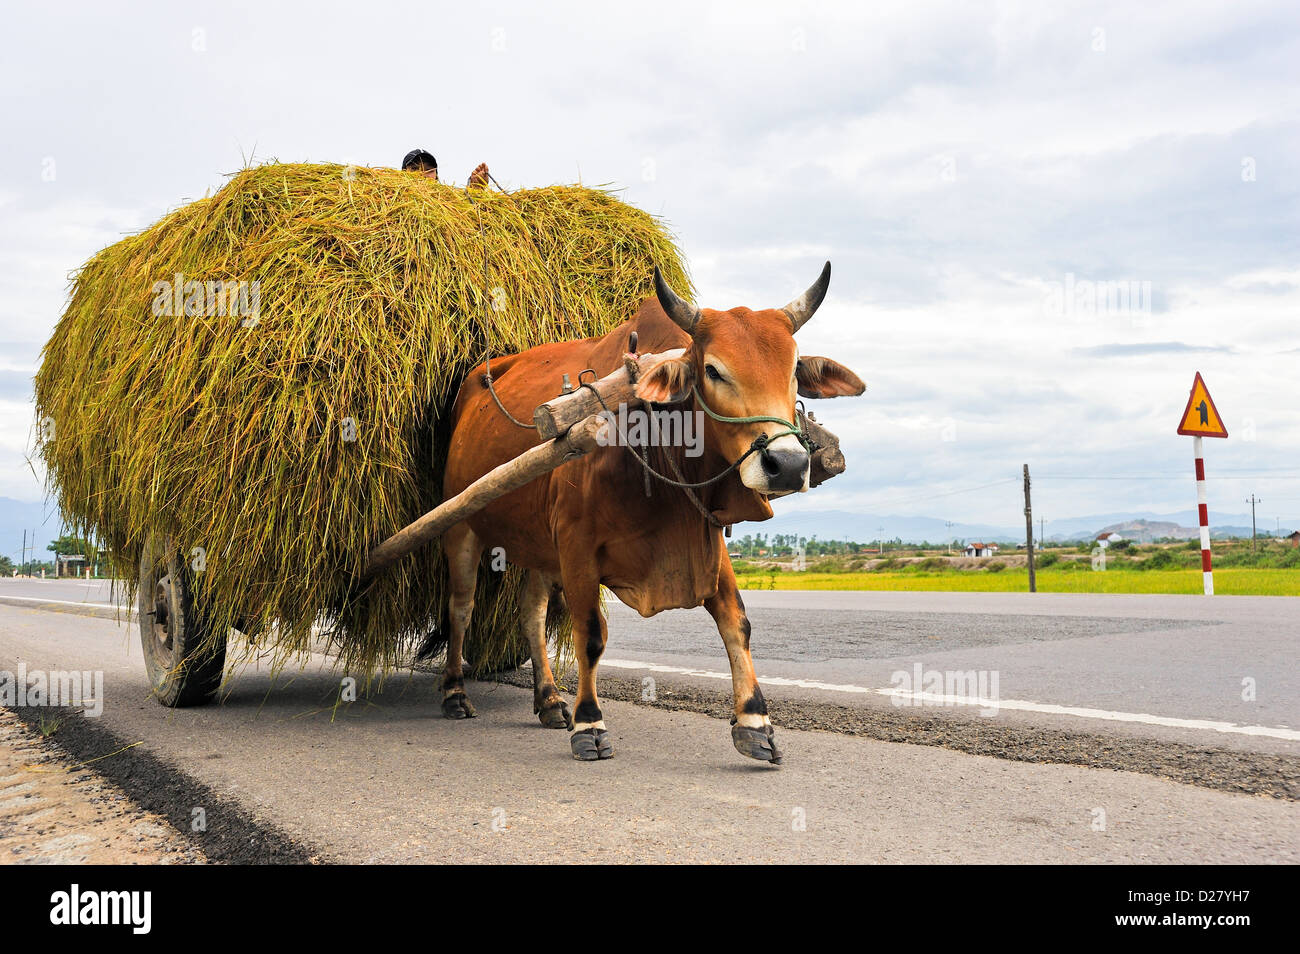 Ox pulling a cart full of hay / straw on a road near Nha Trang, Vietnam - Stock Image